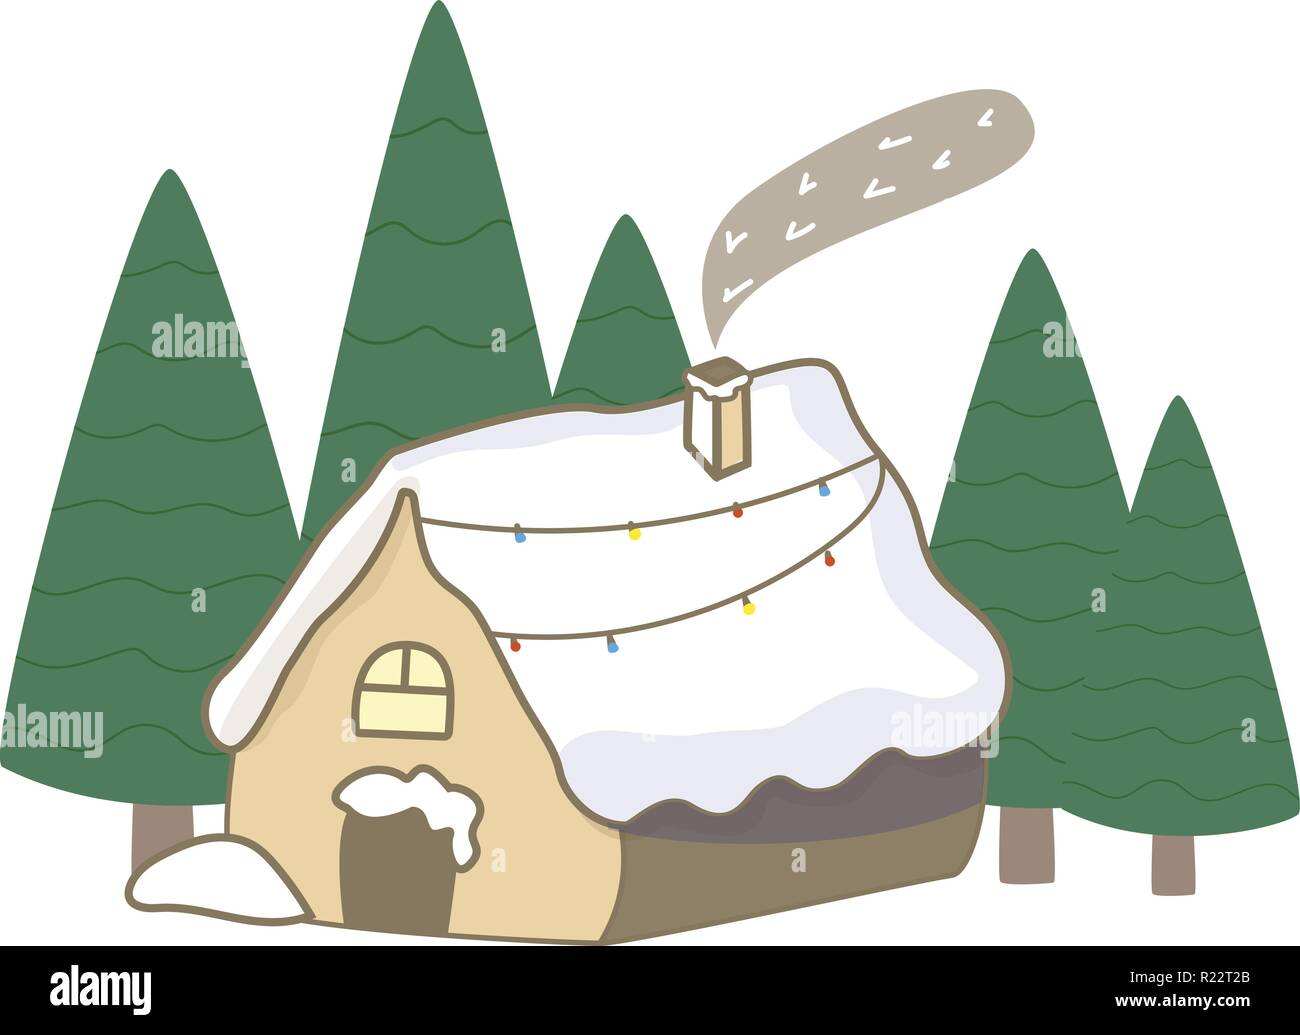 small wood house in forest spruce winter christmas and new year flat icon on white background